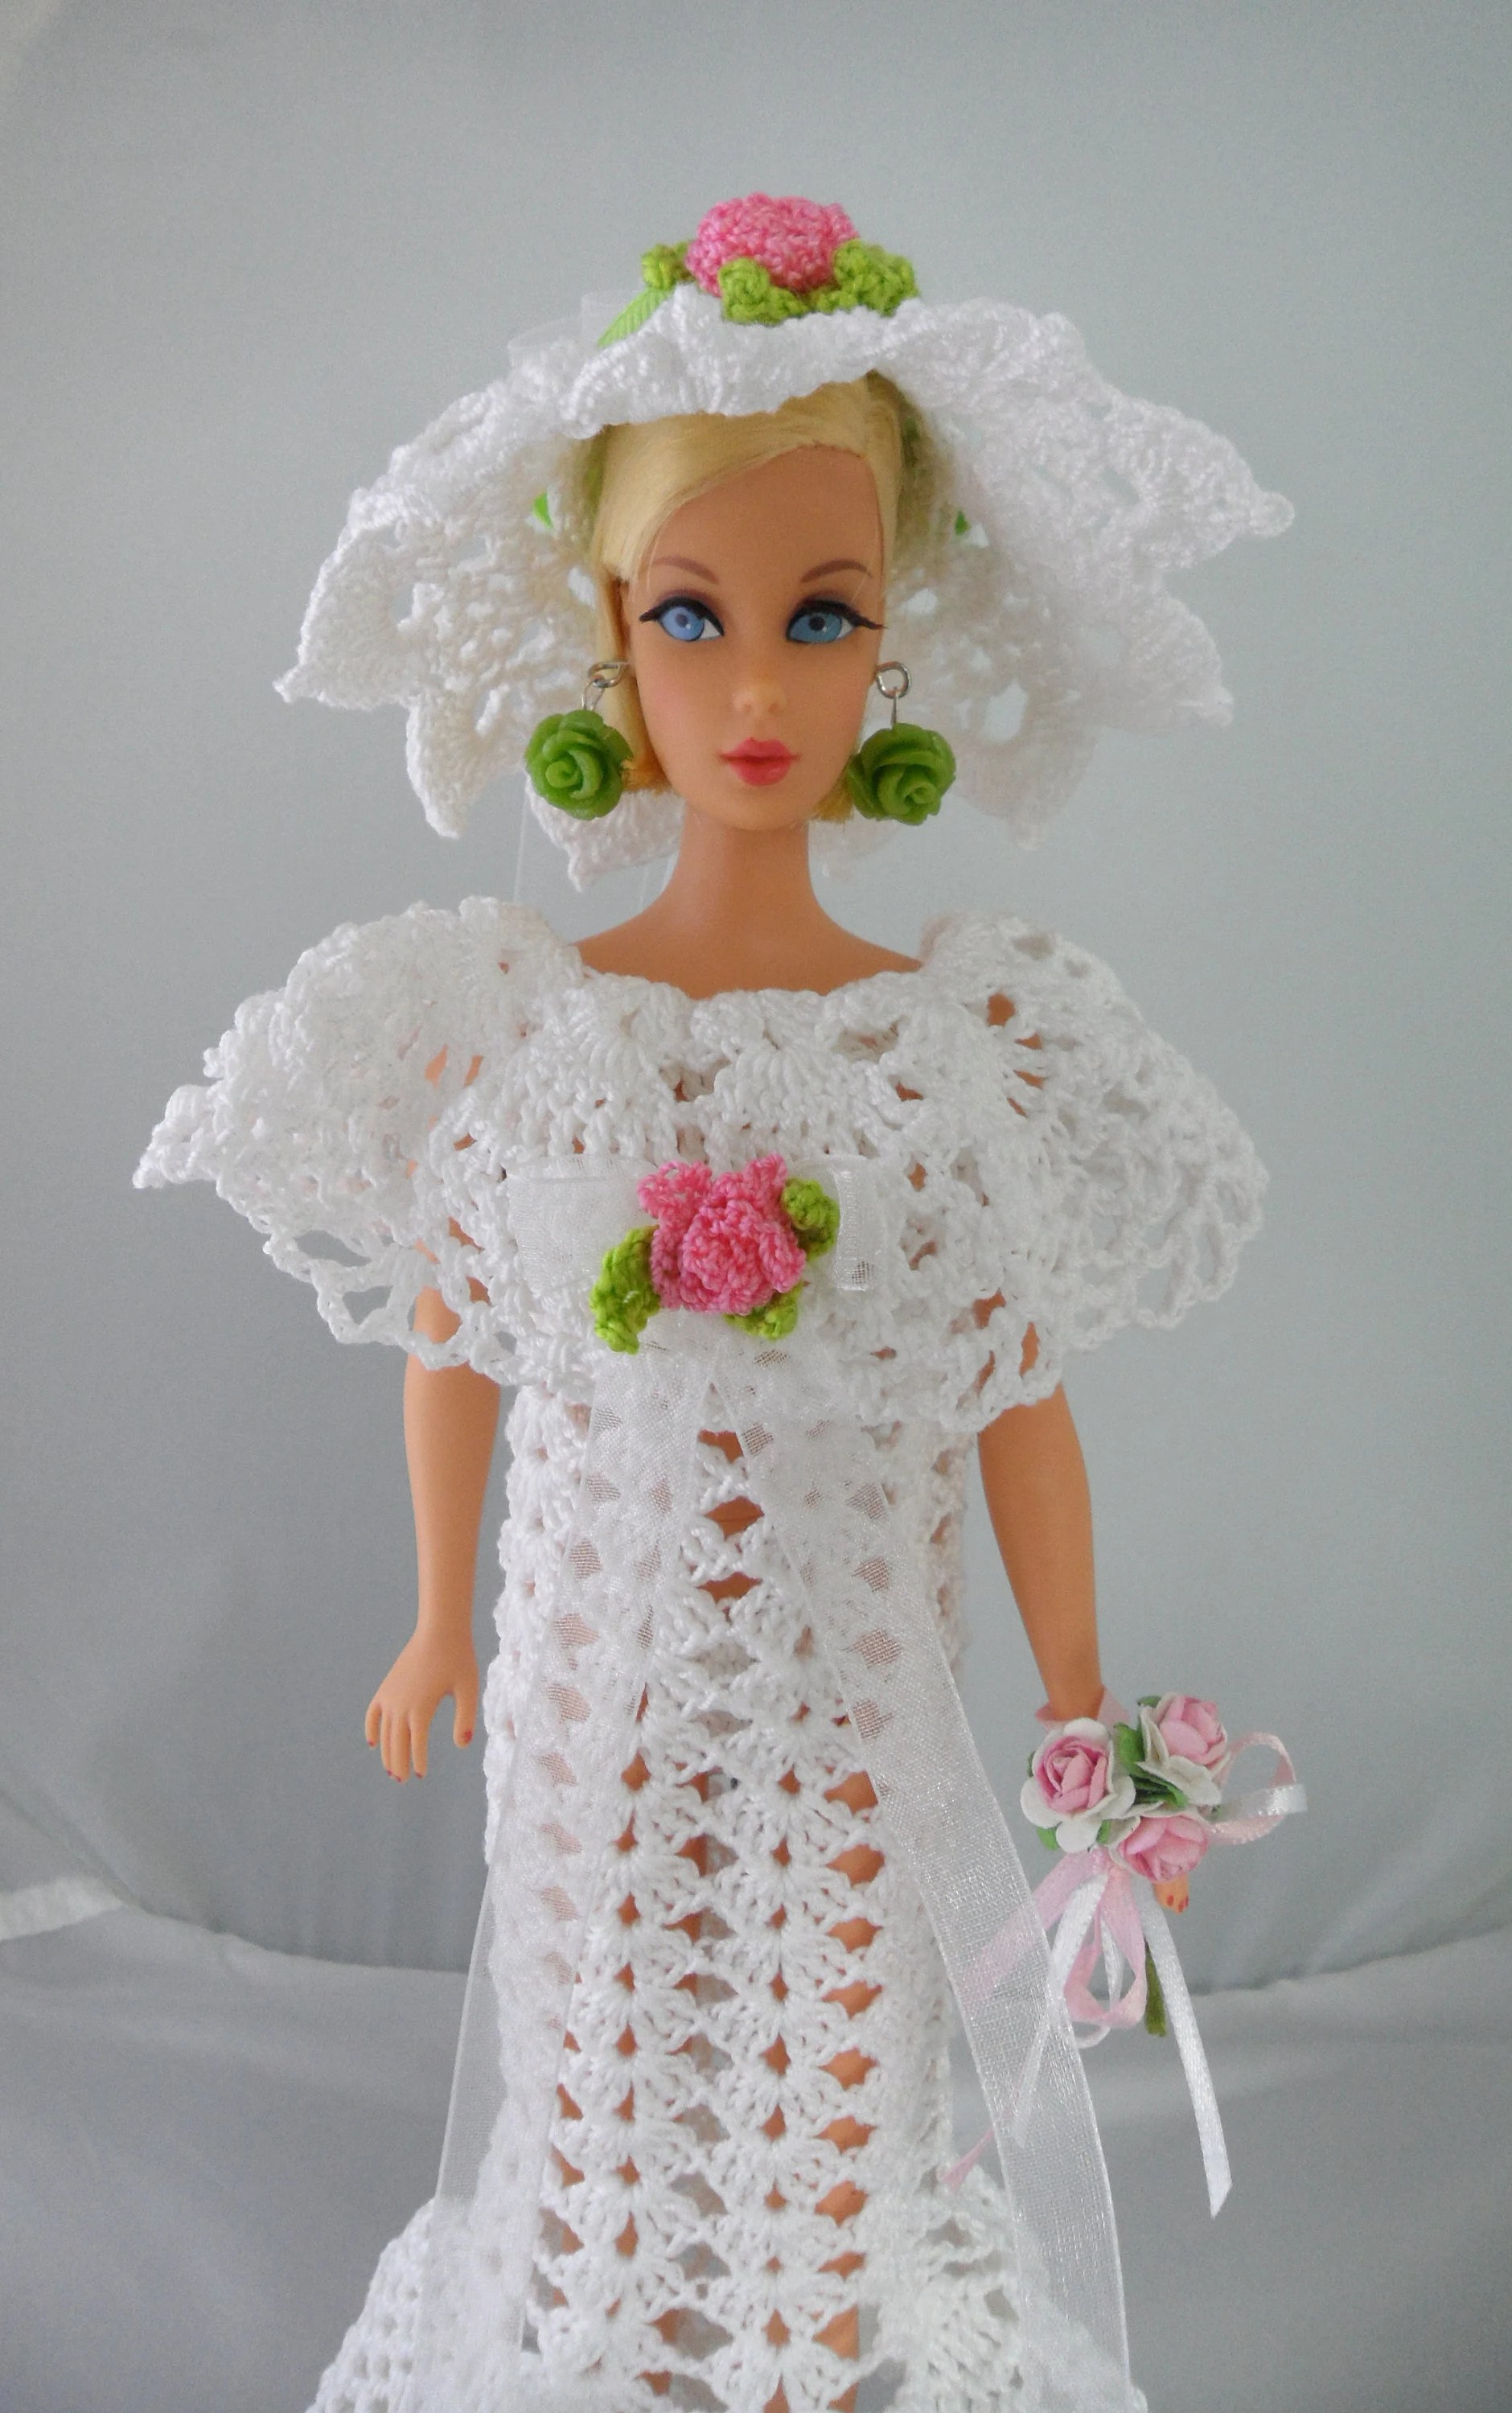 Barbie Badezimmer Set Barbie Bridal Gown Crochet Barbie Clothes Handmade 11 5